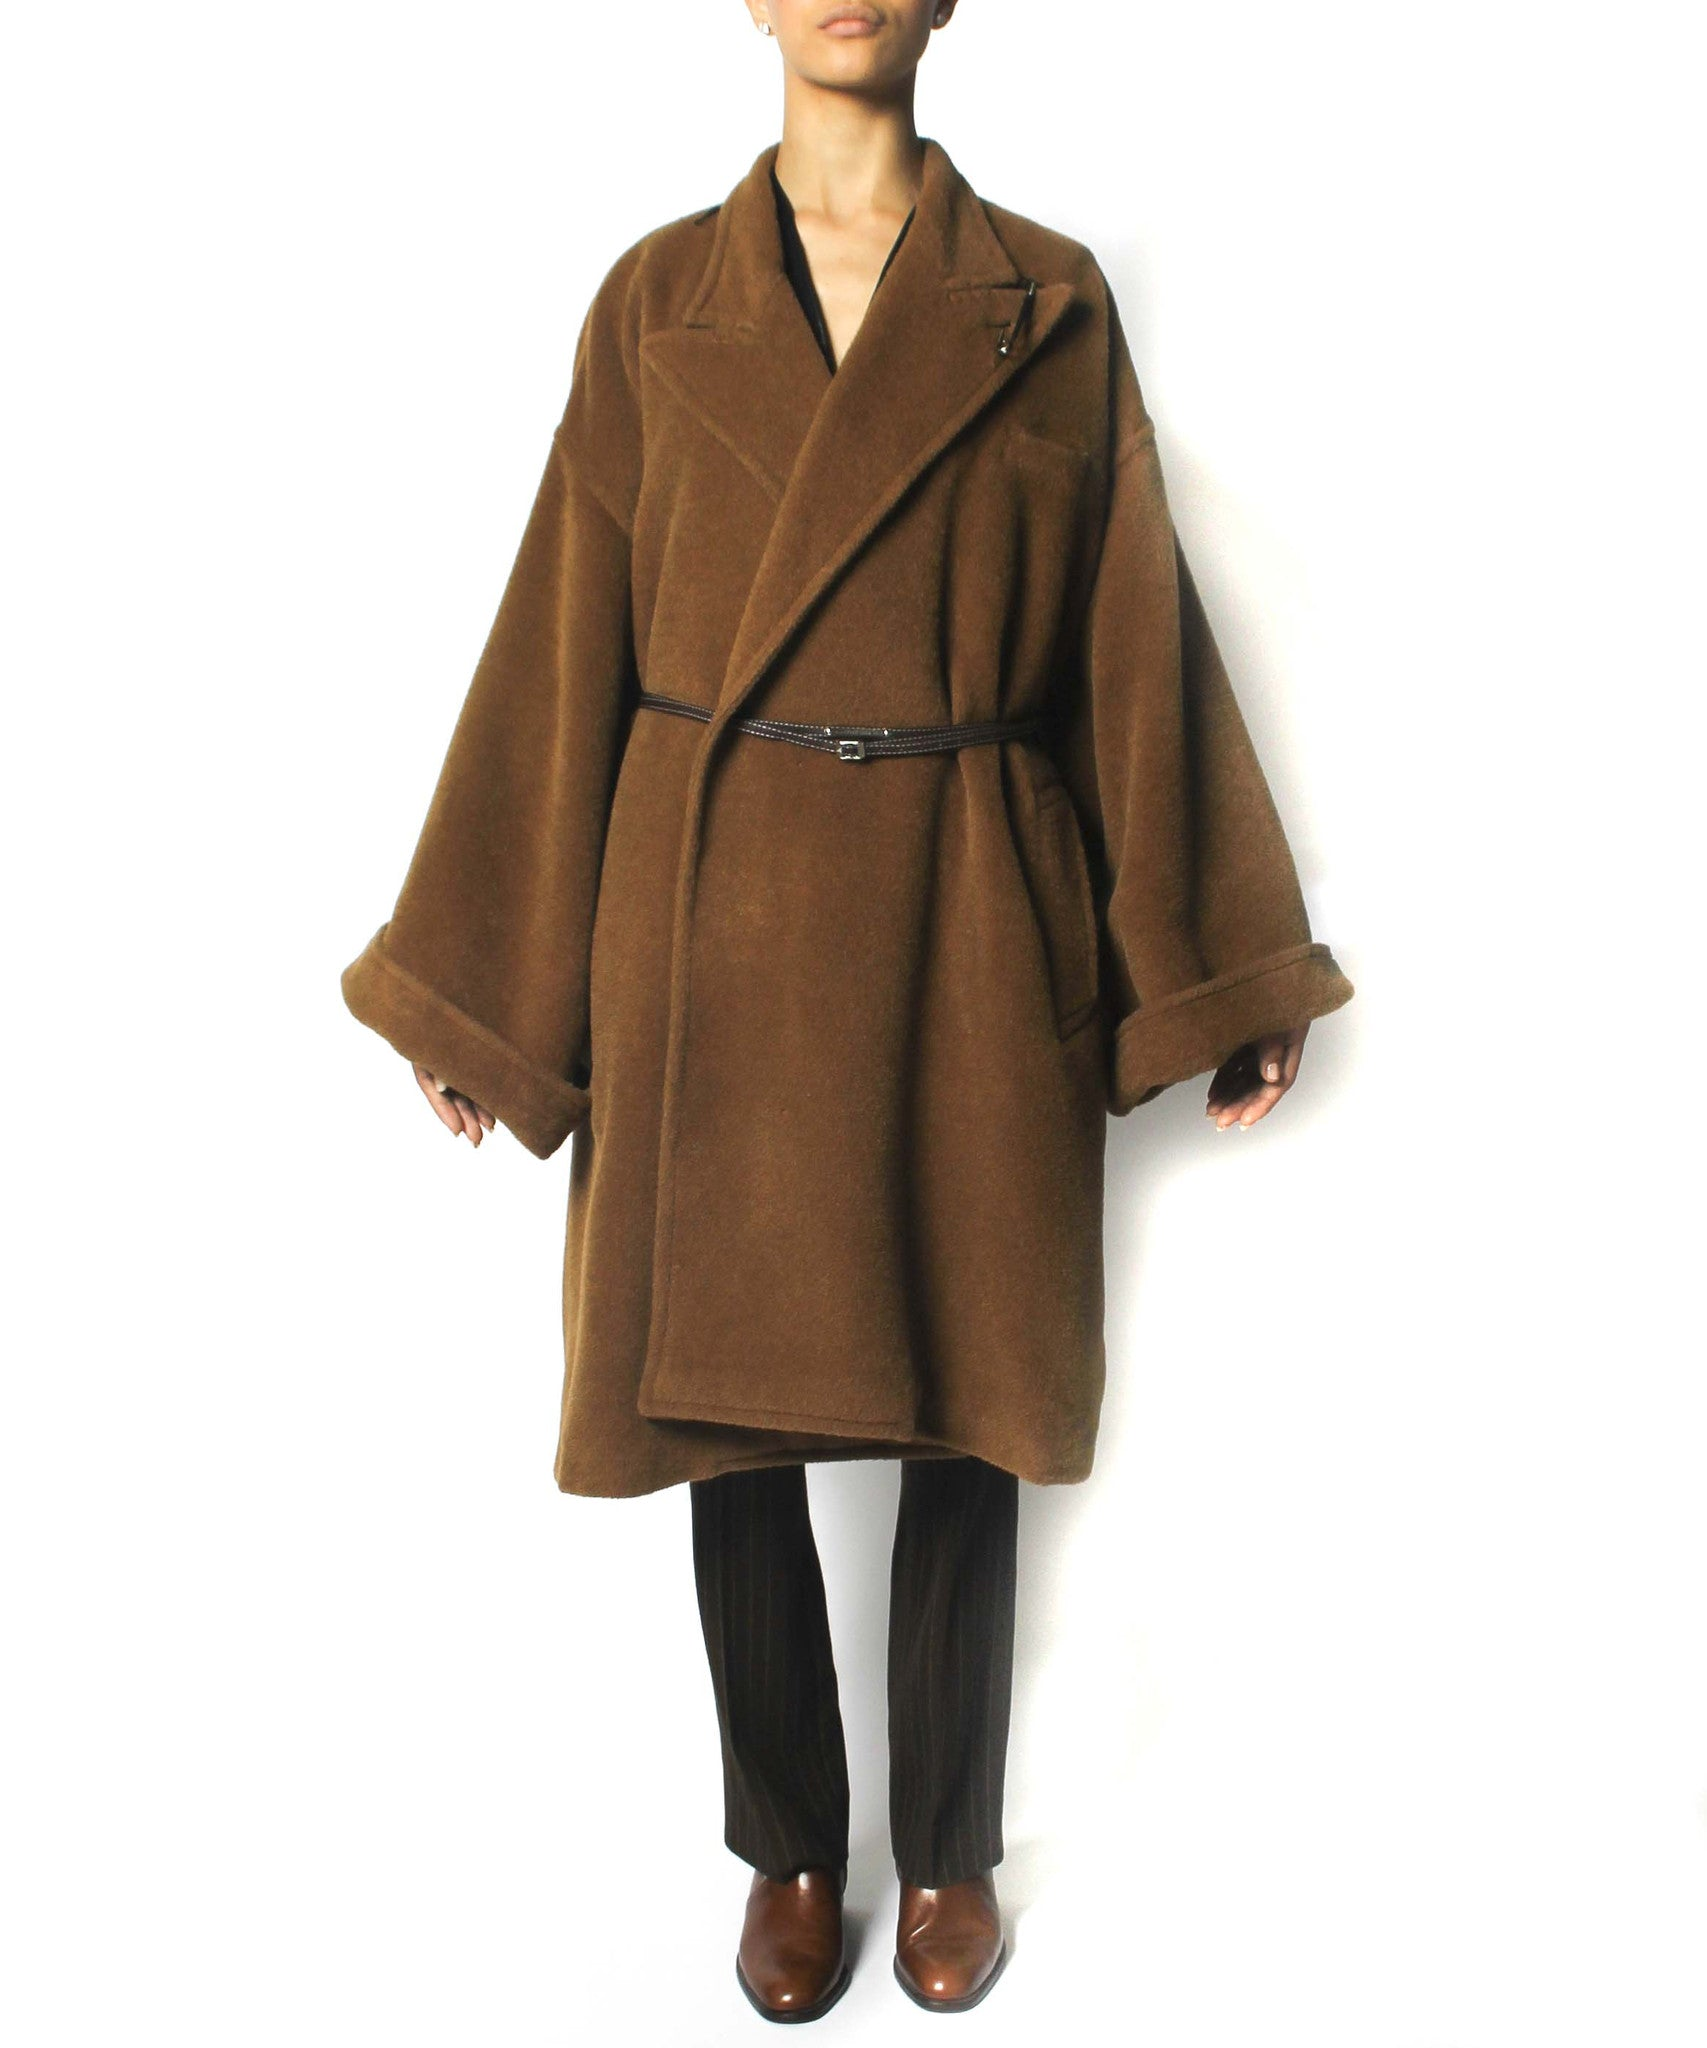 Jean Paul Gaultier 90s Caramel Brown Camel Hair Oversized Coat With Belt